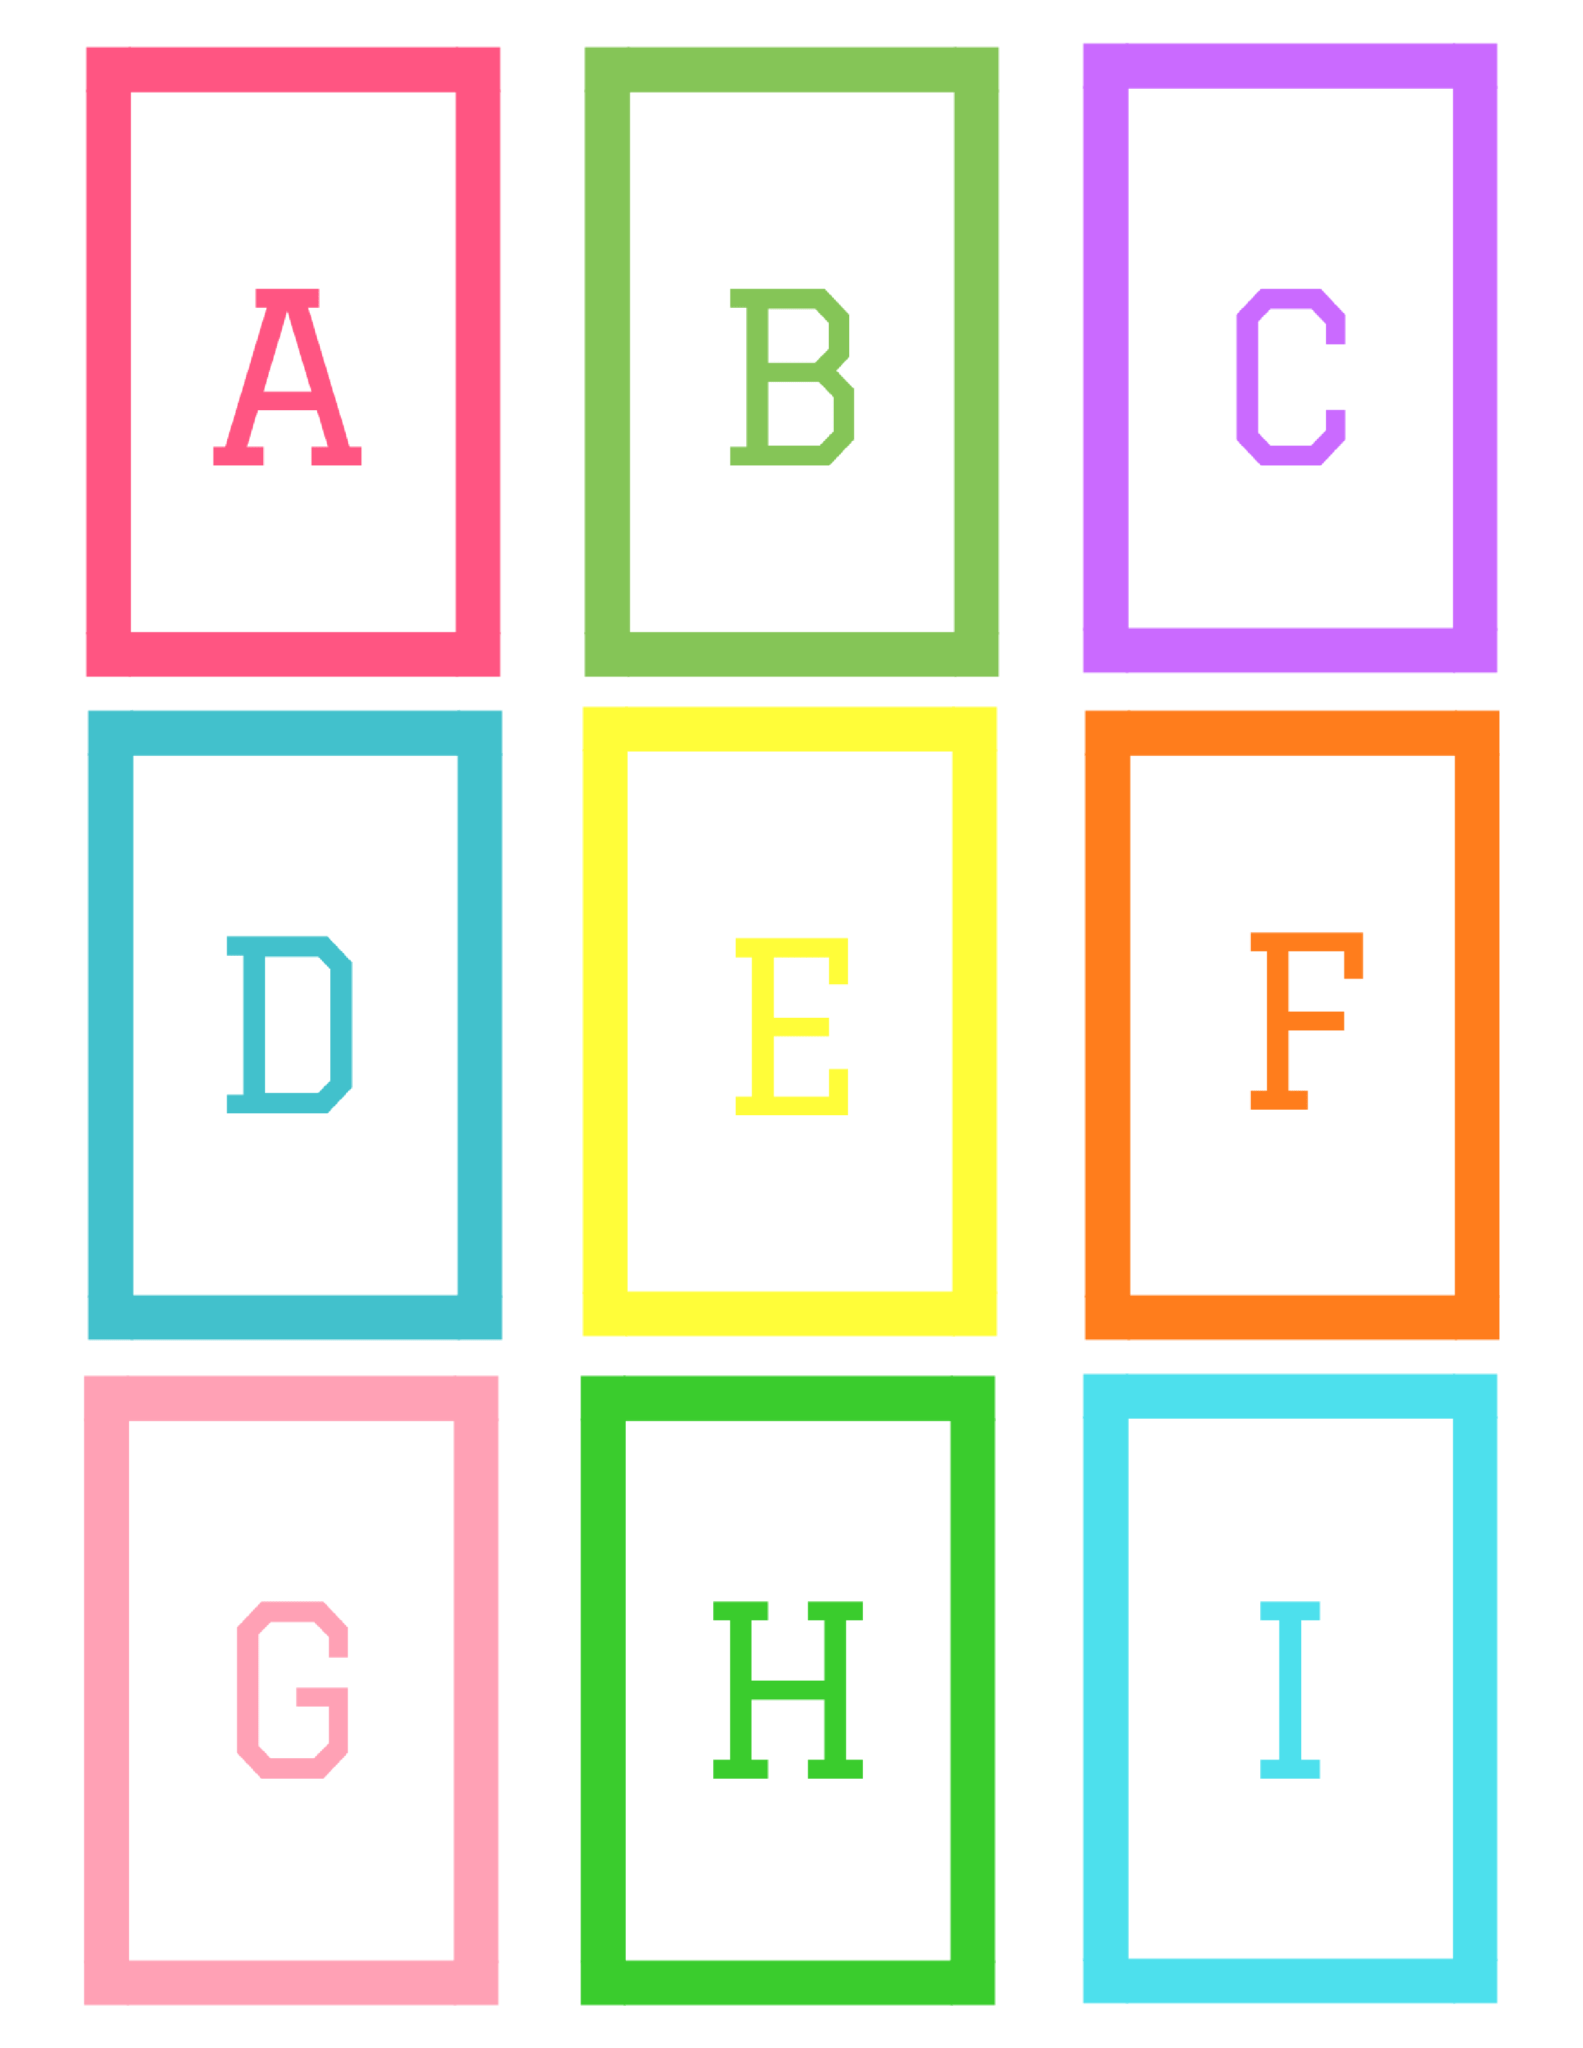 image about Abc Flash Cards Printable identify ABC Flashcards: Totally free Printable - Easy Mother Study